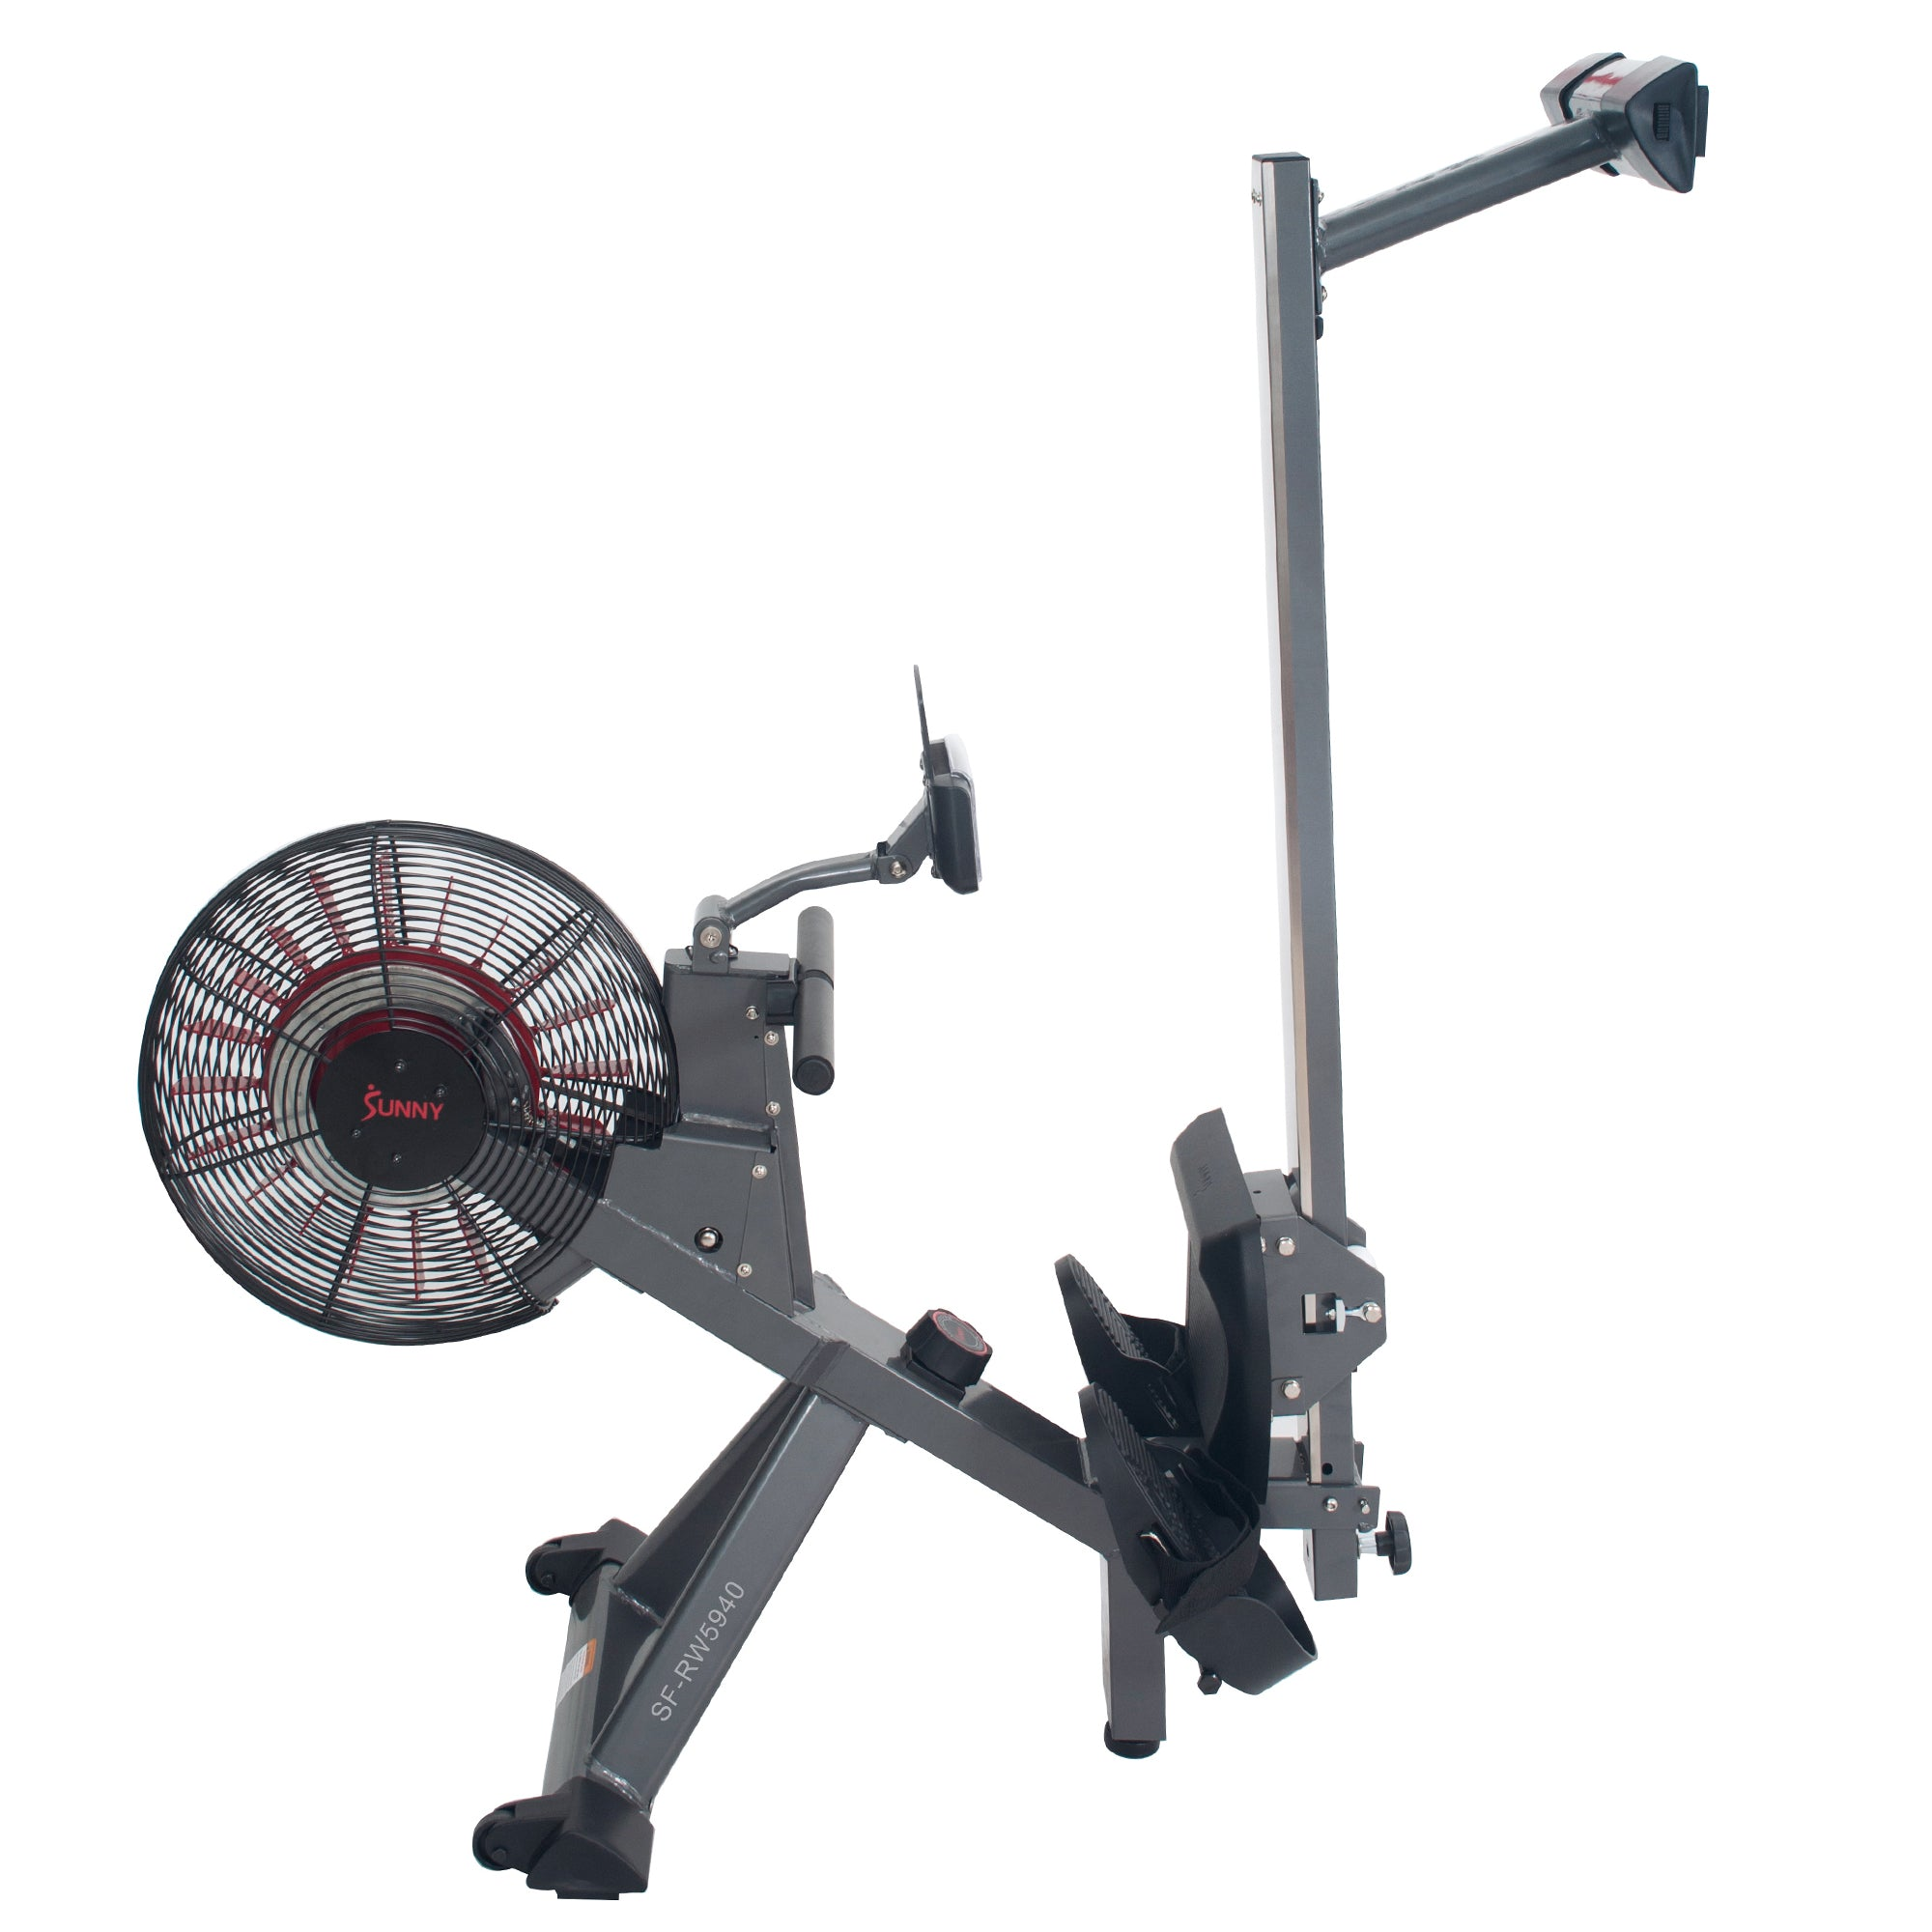 sunny-health-fitness-rowing-machine-phantom-hydro-water-rowing-machine-SF-RW5910-foldable